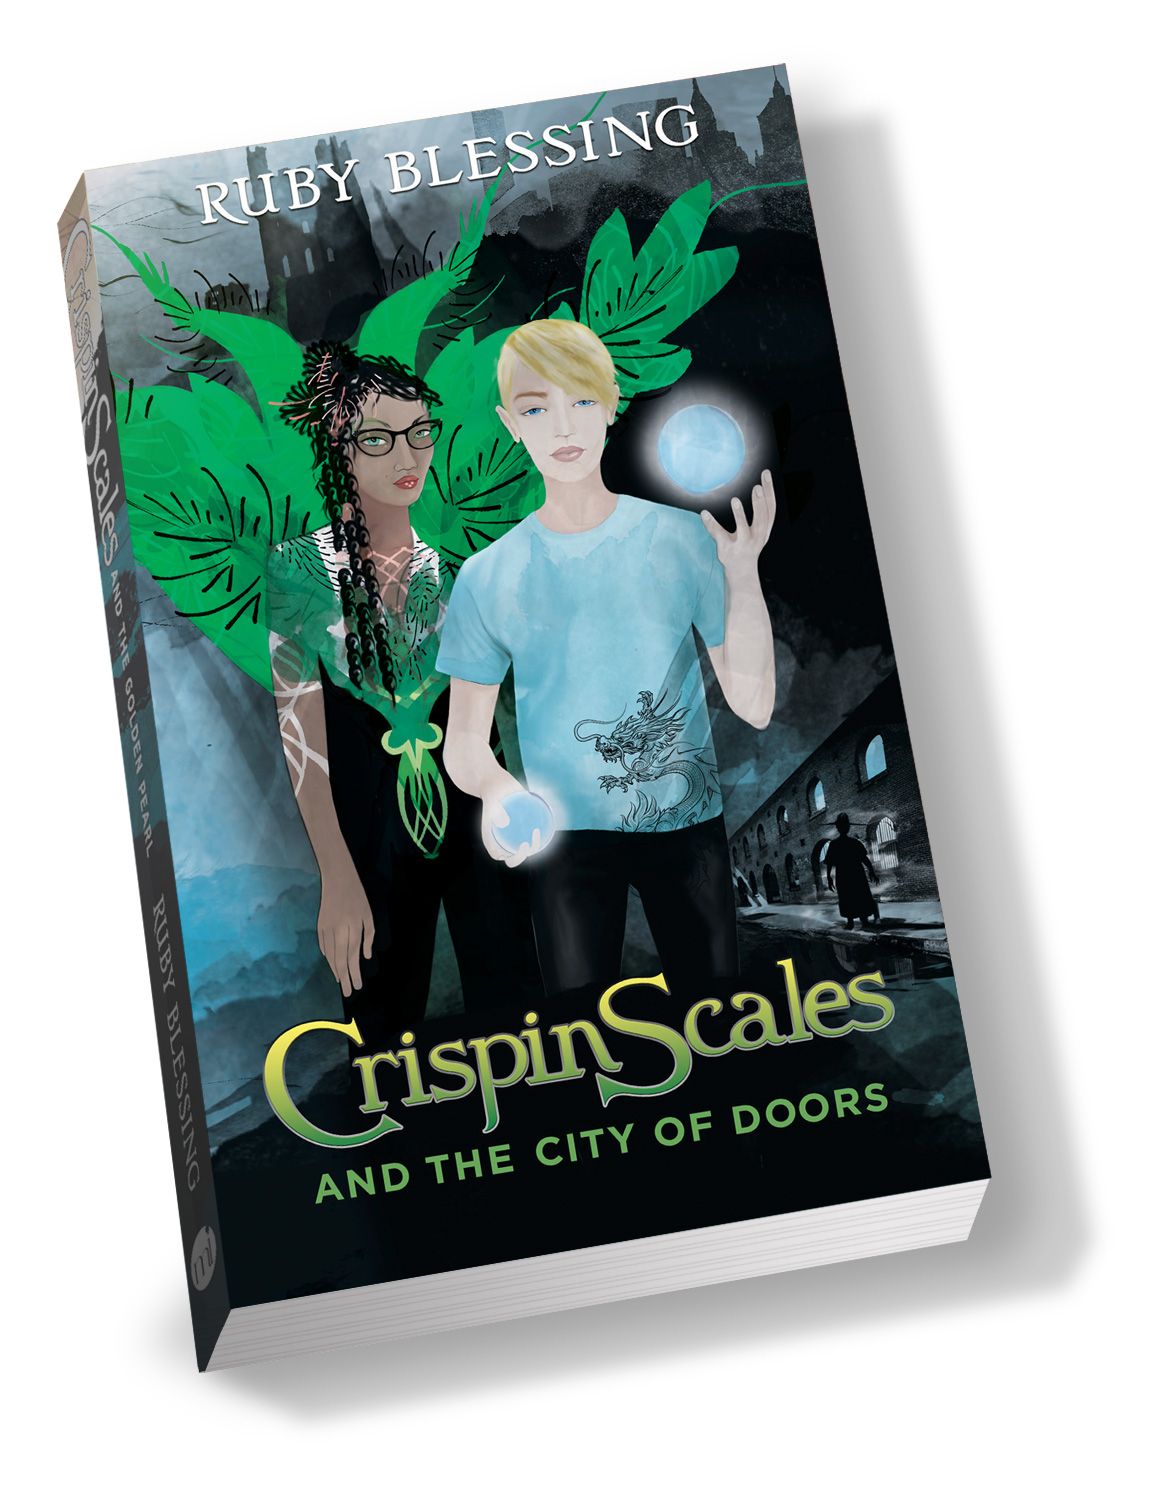 Crispin Scales and the City of Doors